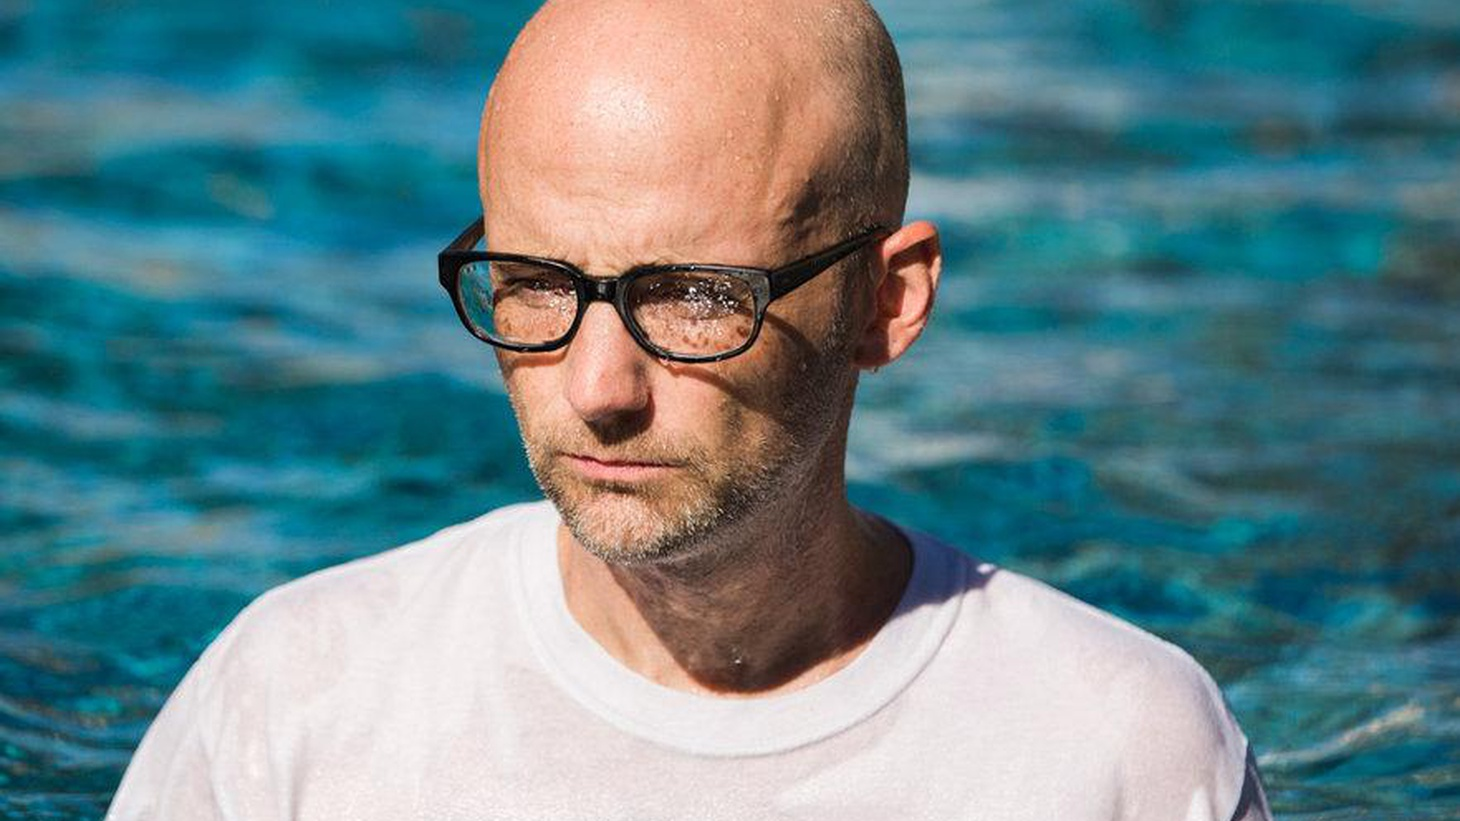 The story of Moby's 11th album is one of collaboration: Innocents finds the versatile multi-instrumentalist recruiting an impressive assortment of guest vocalists.